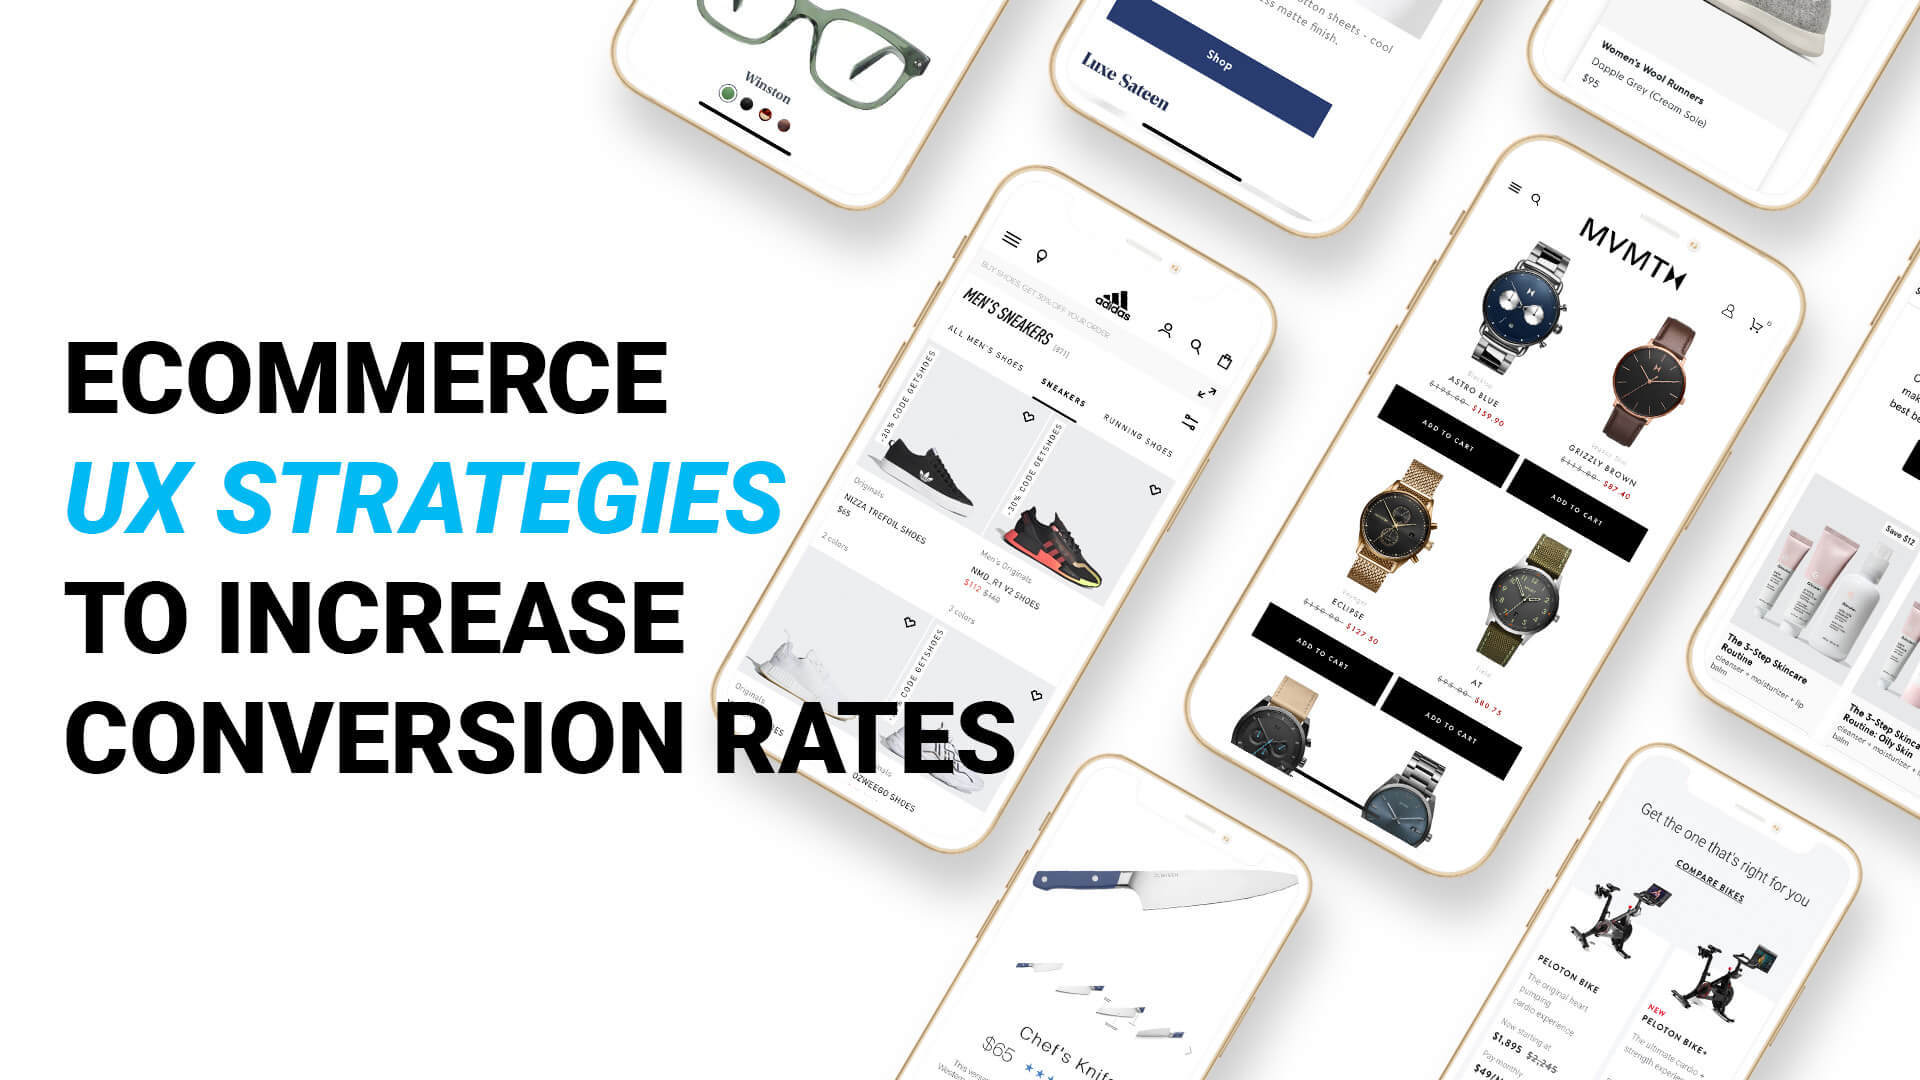 ecommerce user experience tips